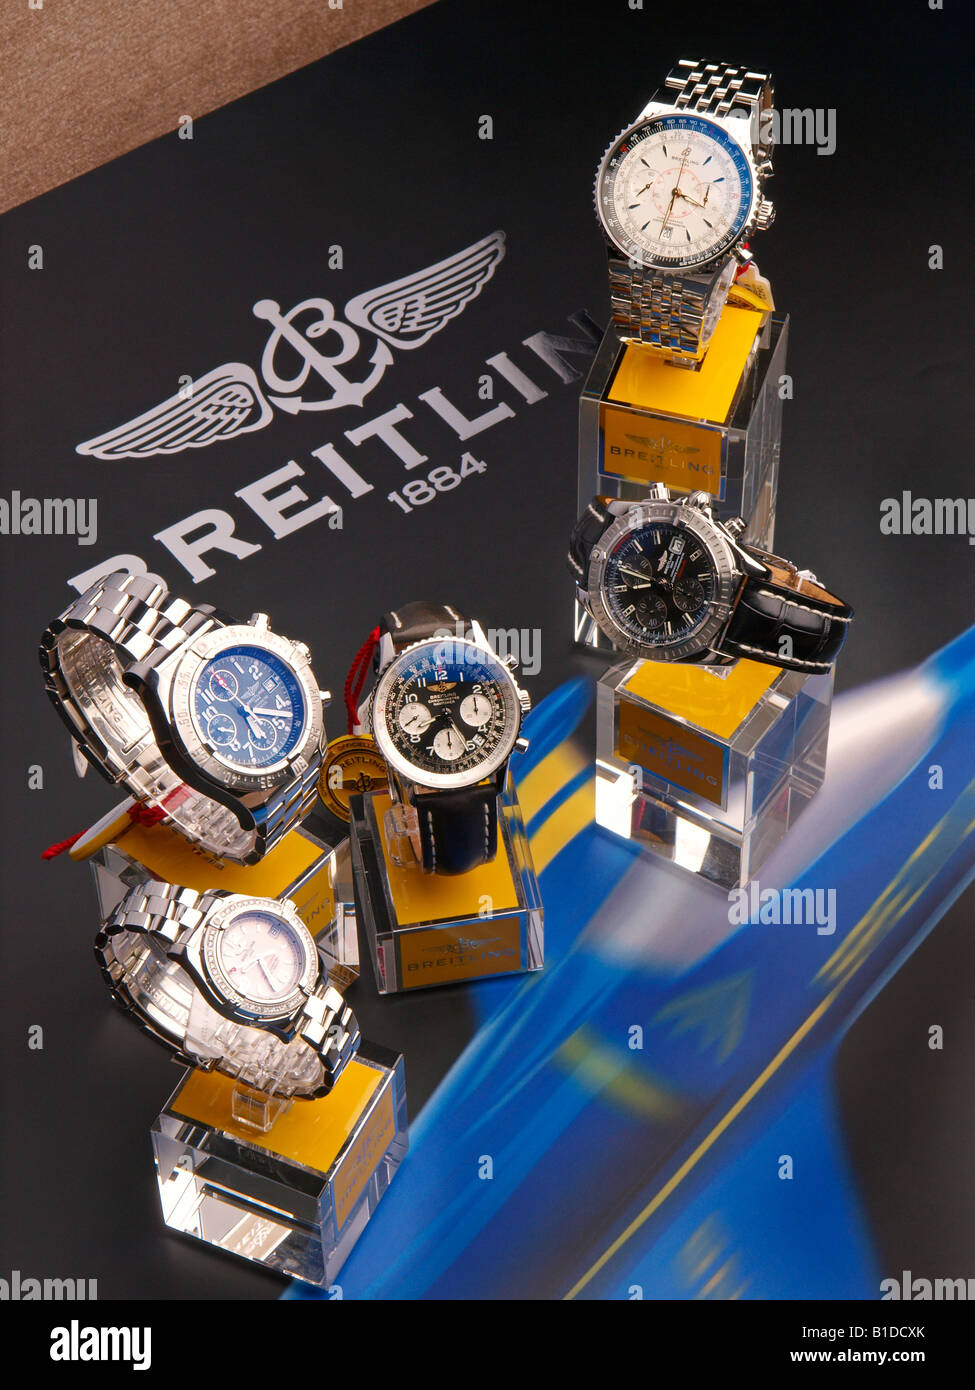 Collection of Breitling mens watches and chronographs with logo - Stock Image